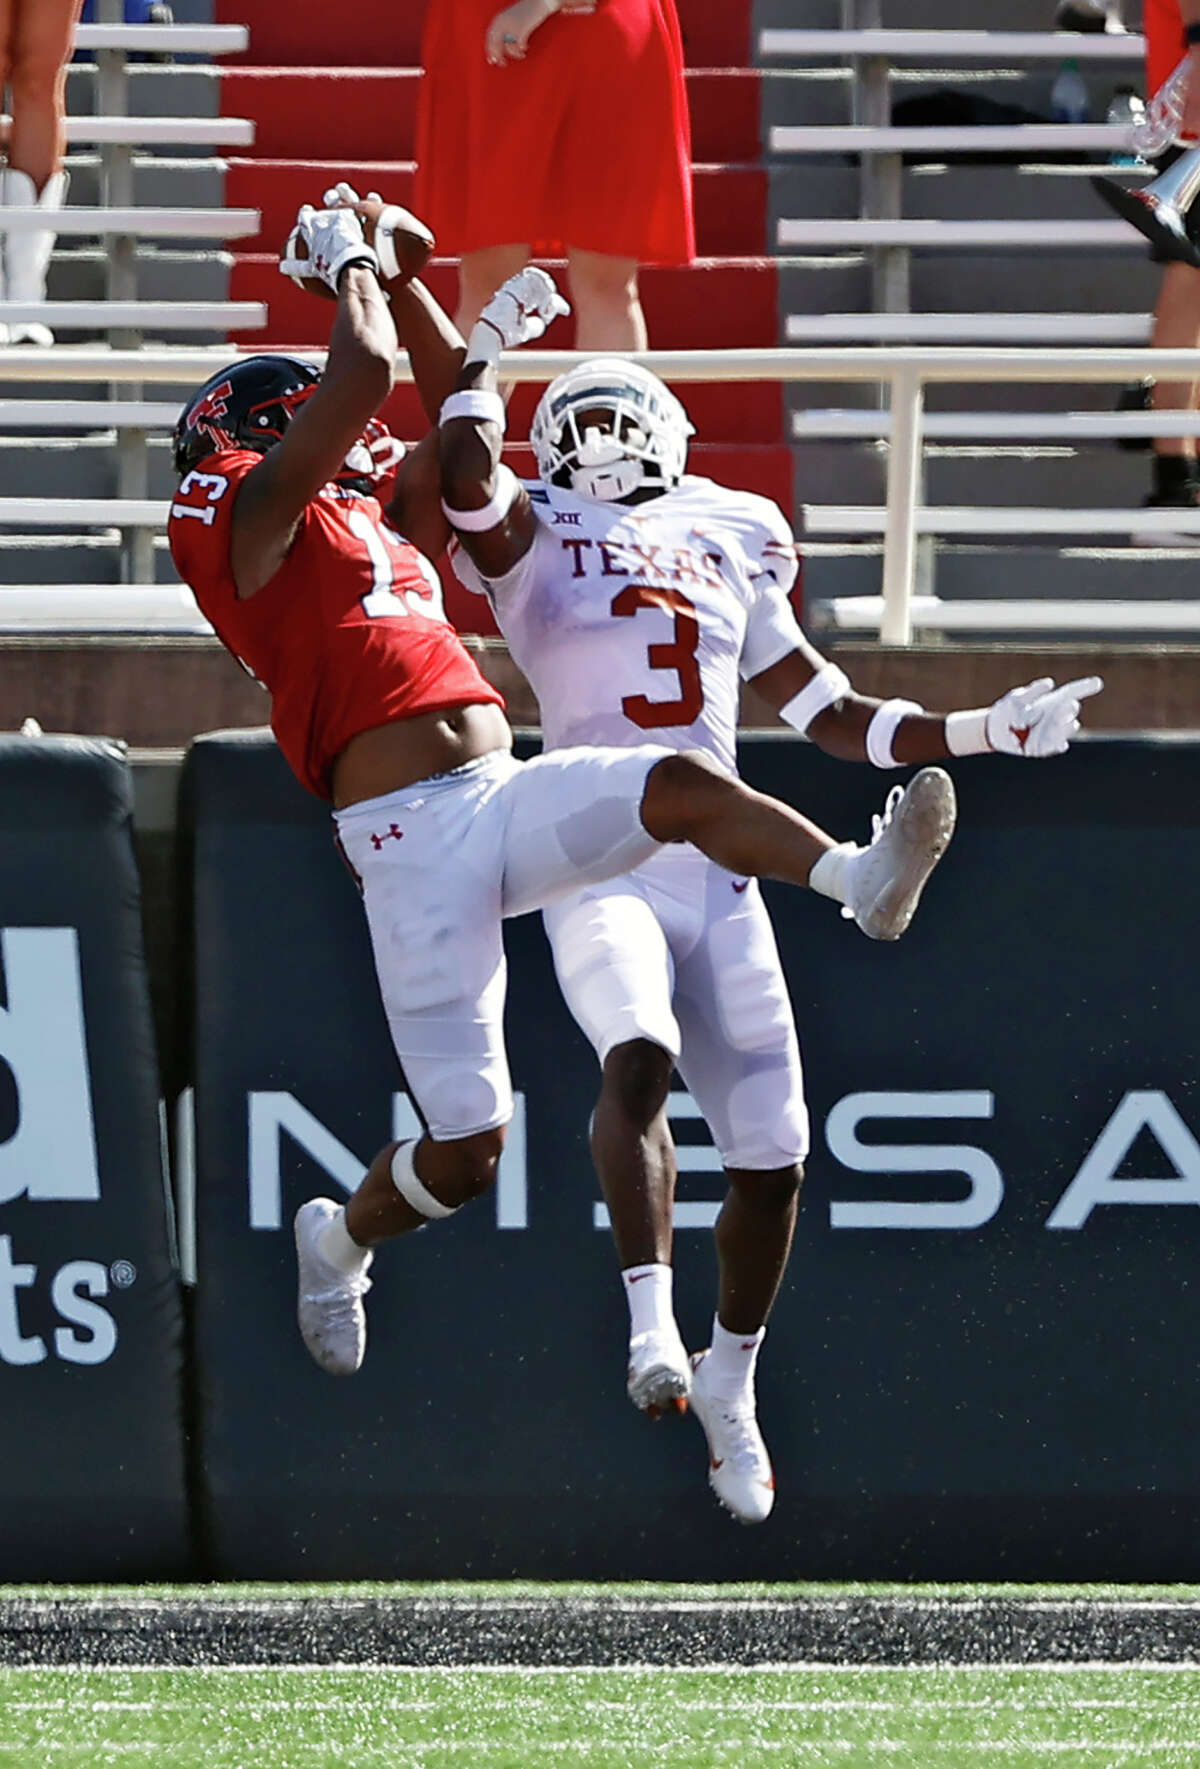 Texas Tech's Erik Ezukanma (13) catches a touchdown pass around Texas' Jalen Green (3) during the first half of an NCAA college football game Saturday, Sept. 26, 2020, in Lubbock, Texas. (Brad Tollefson/Lubbock Avalanche-Journal via AP)